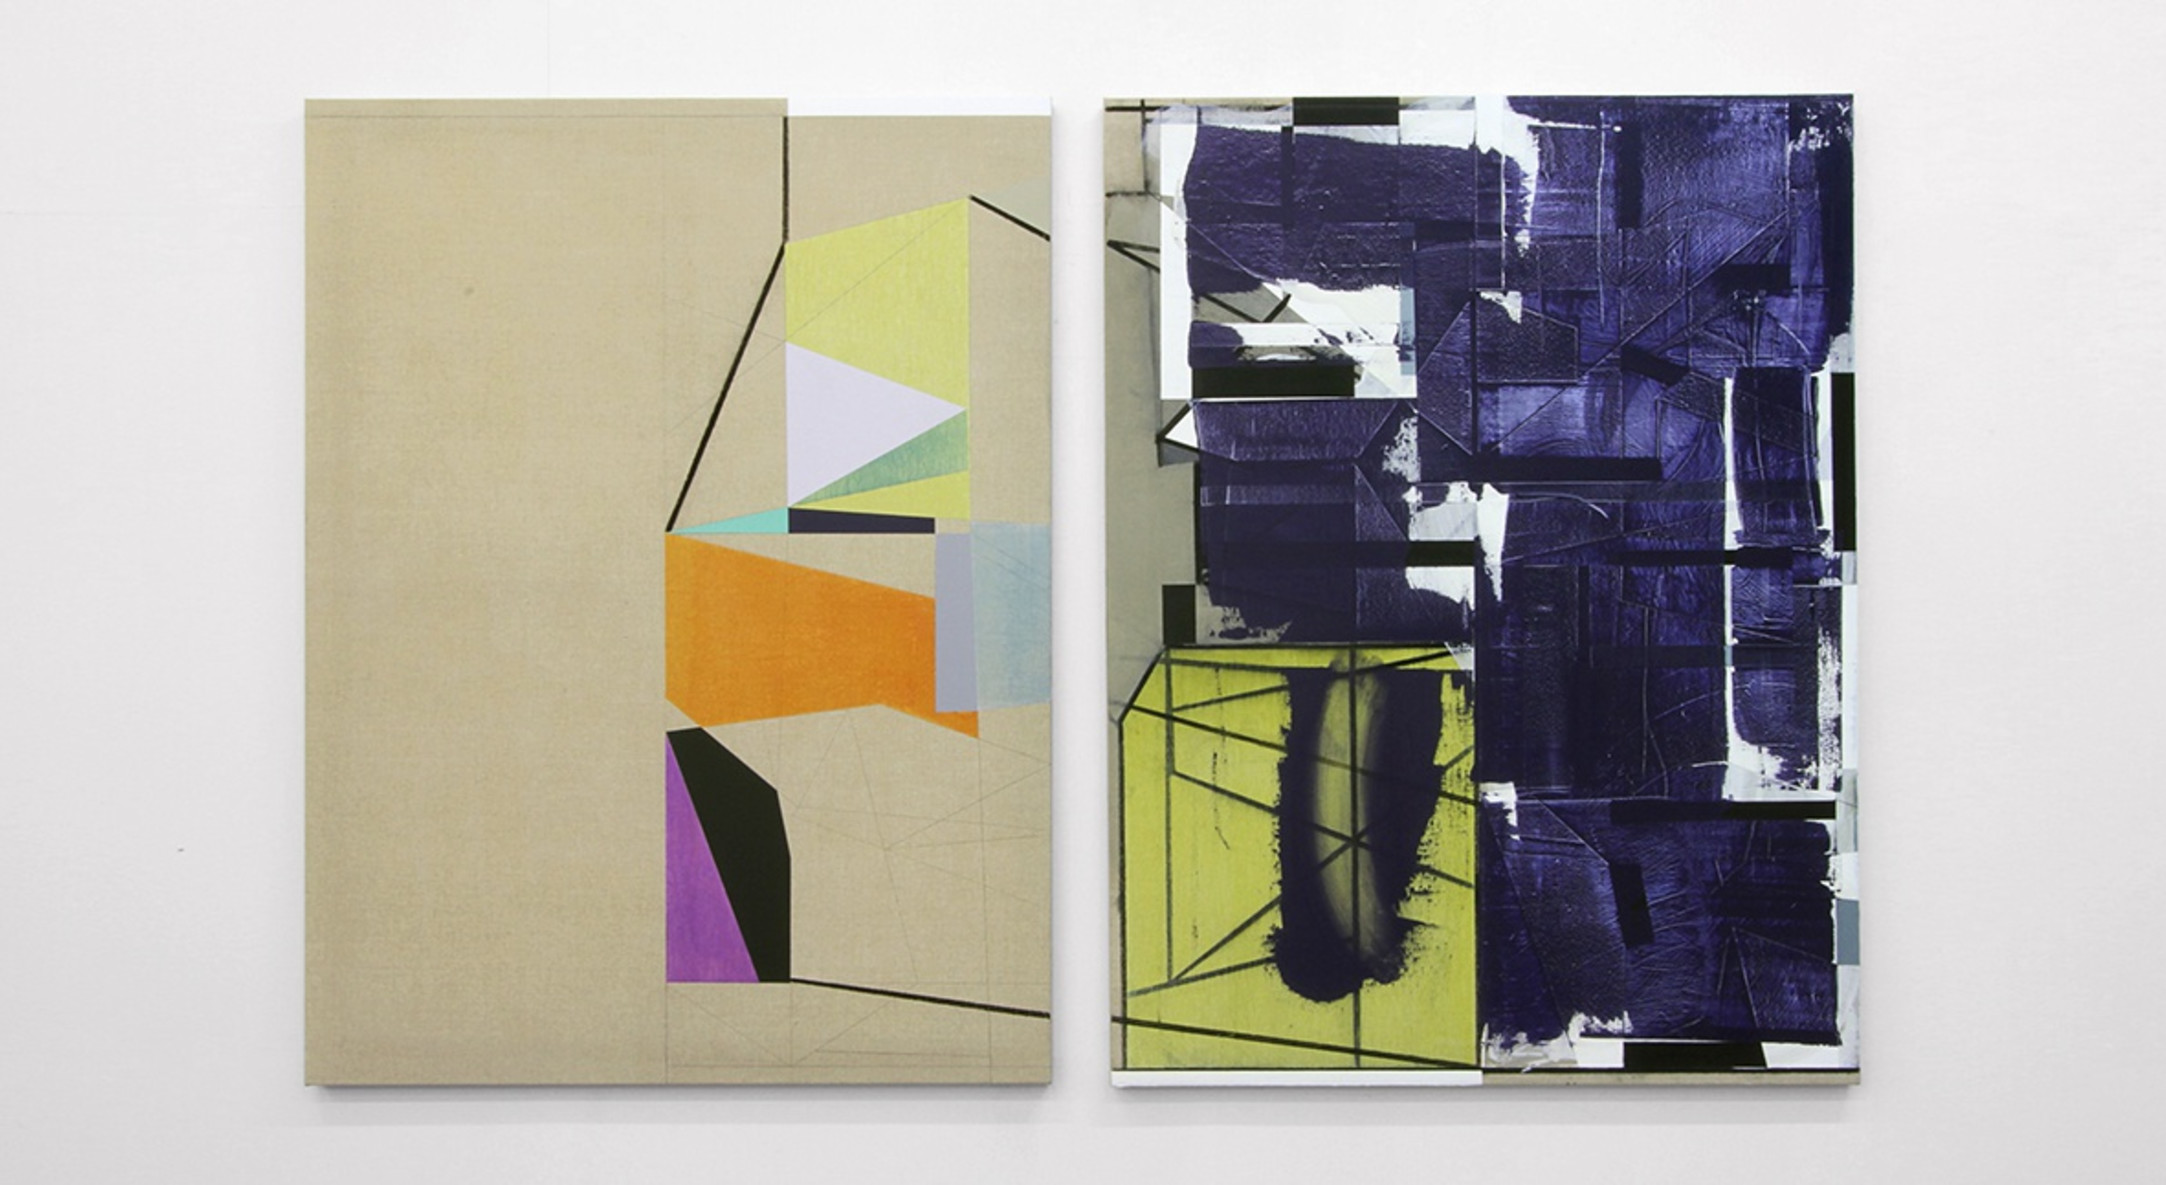 Andrew Bick, Variant t-s [shifted double echo], 2013-2014, Acrylic, charcoal, pencil, oil, wax medium, and watercolour on linen in two parts, Each:135 x 100 cm, 53 1/8 x 39 3/8 in